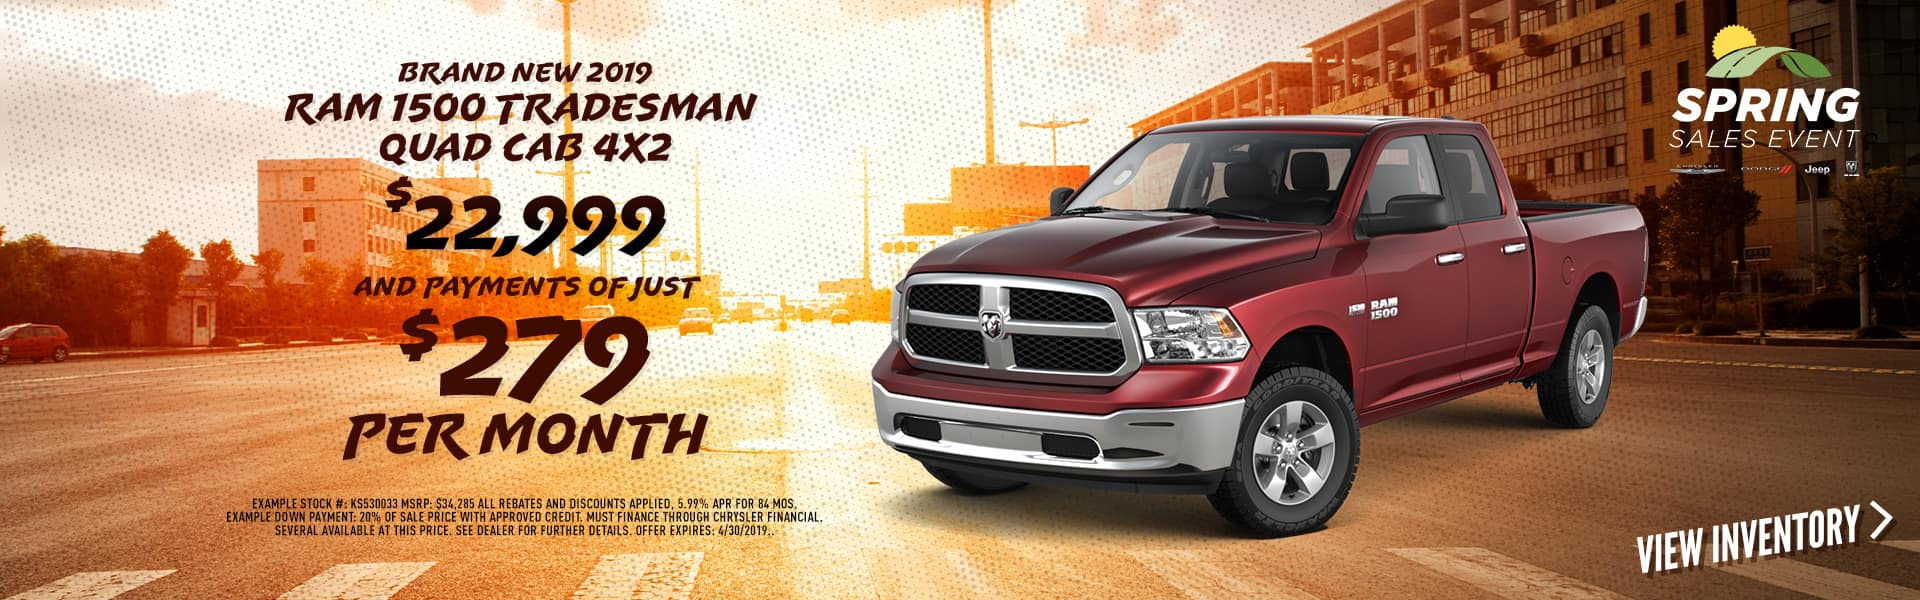 brand-new-ram-1500-tradesman-quad-cab-4x2-with-payments-of-279-per-month-tulsa